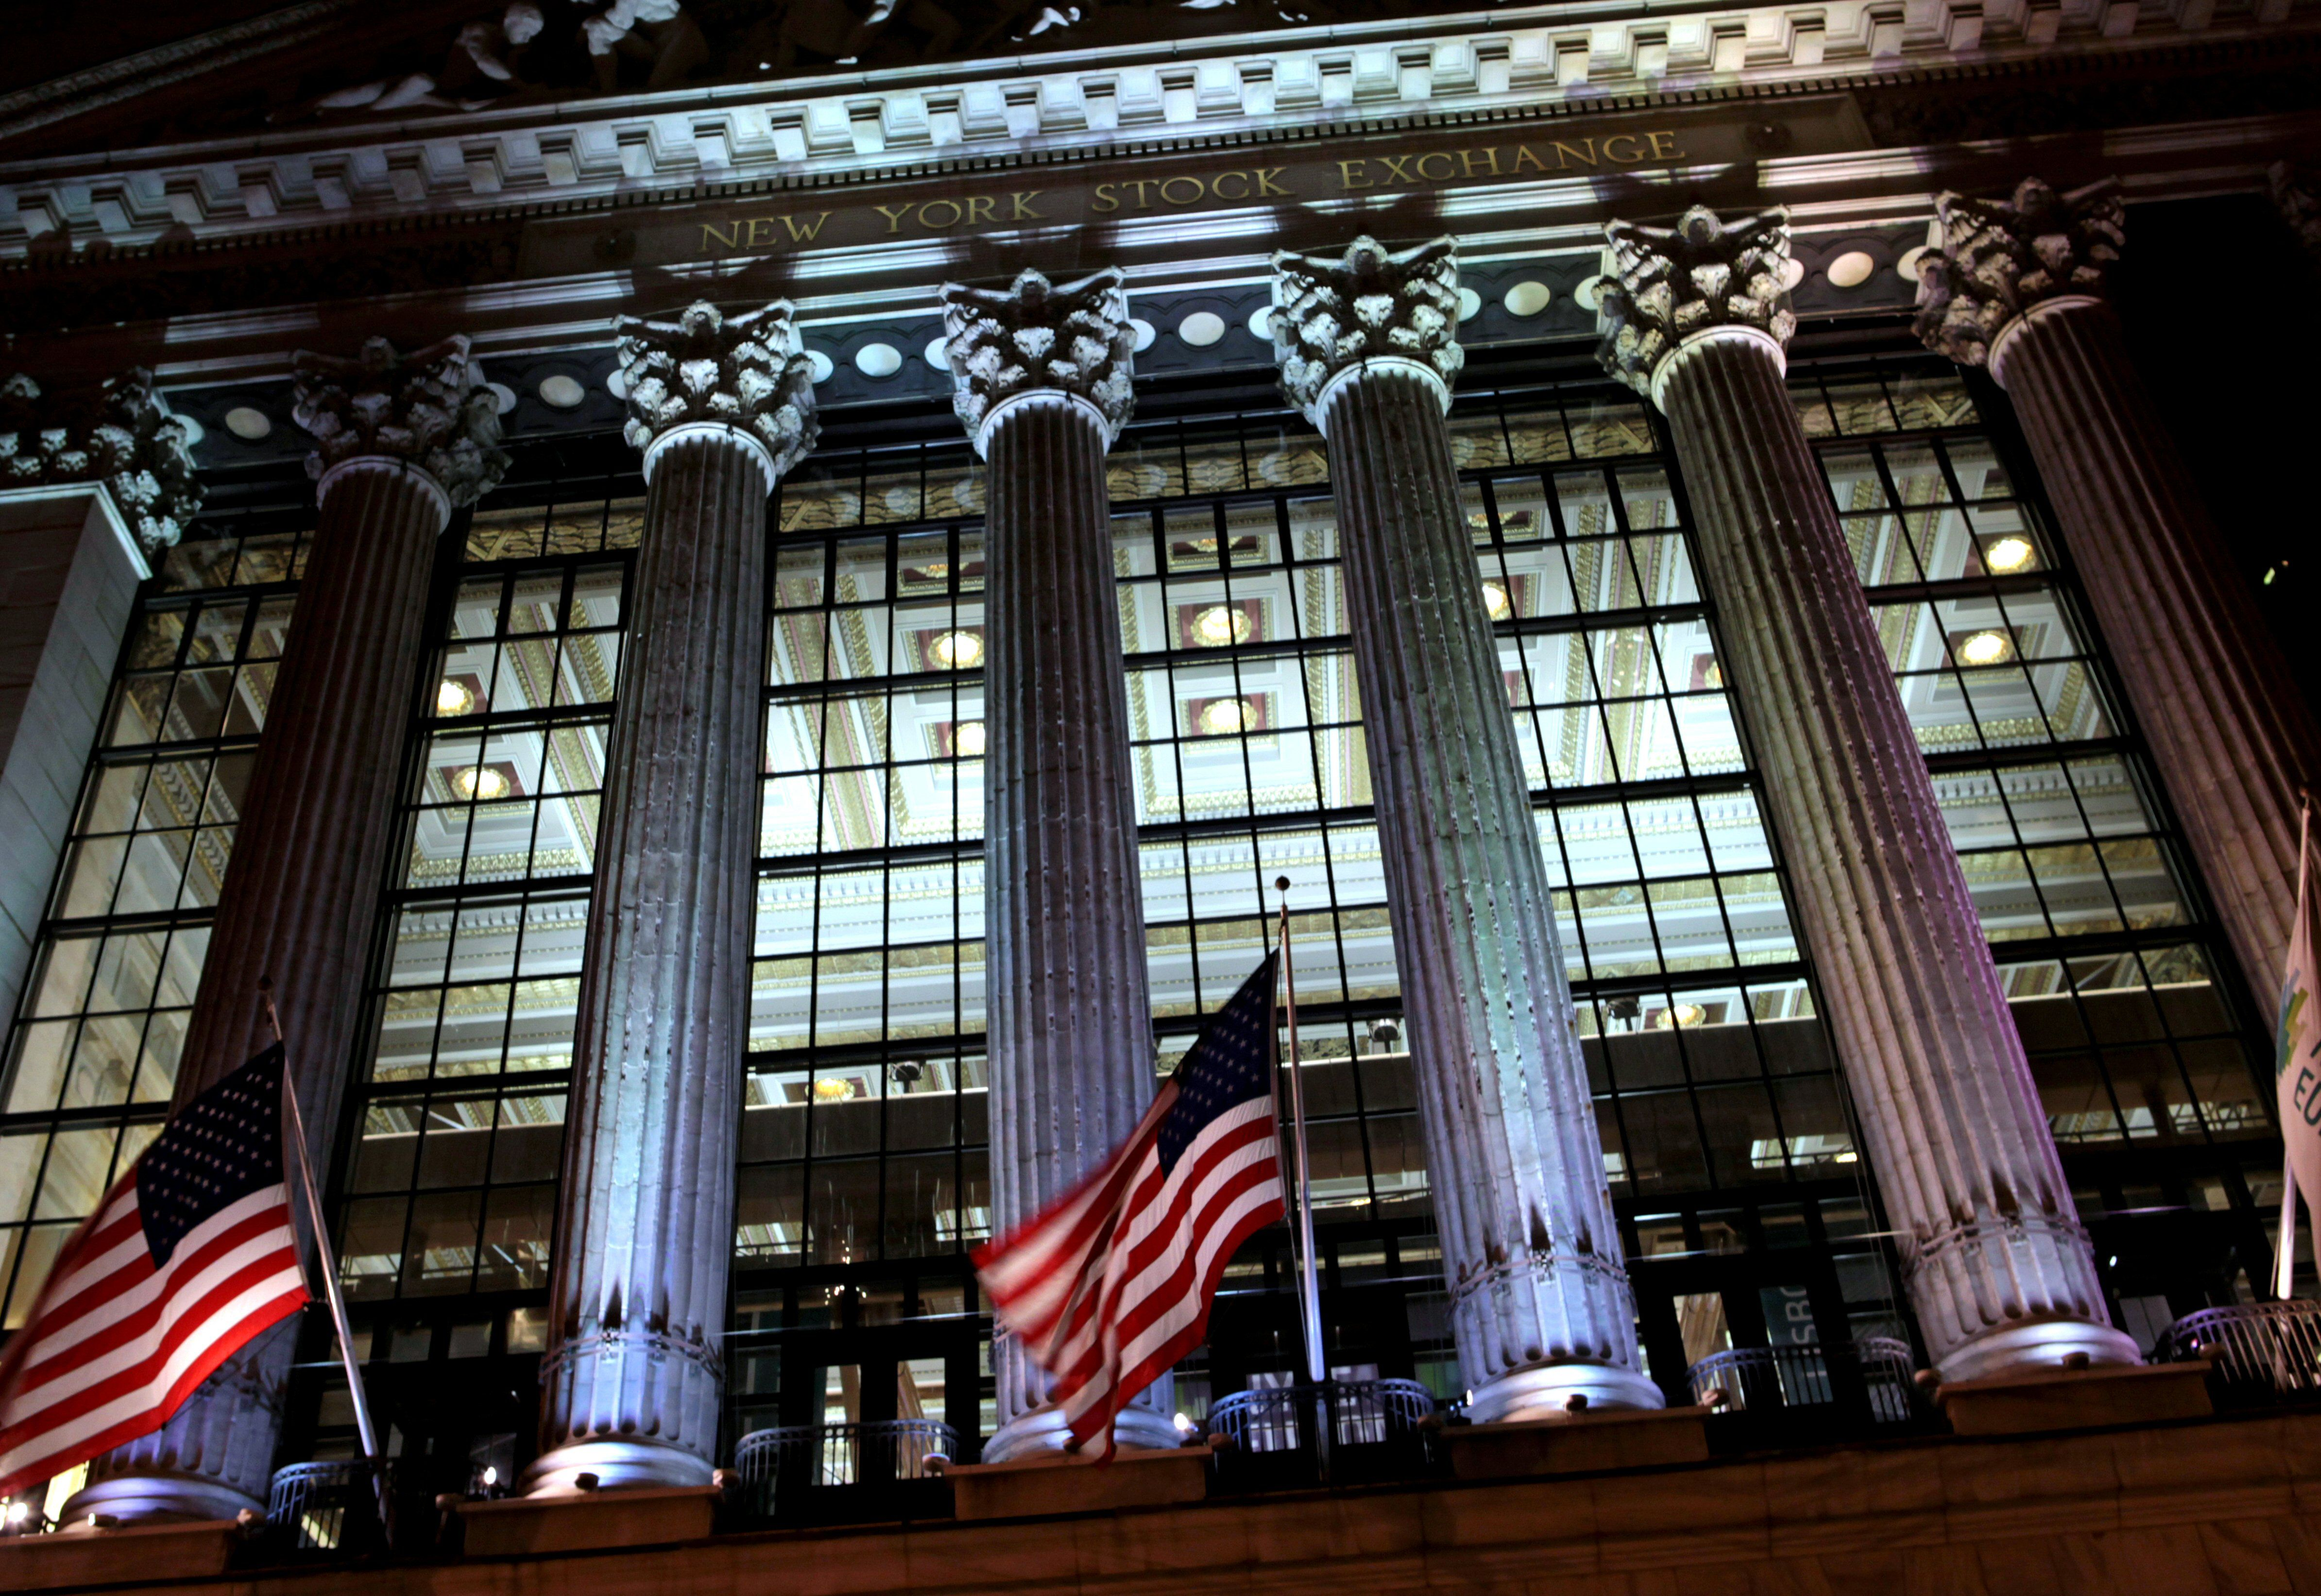 Night view looking through glass curtain wall facade of New York Stock Exchange (NYSE), designed by George B. Post